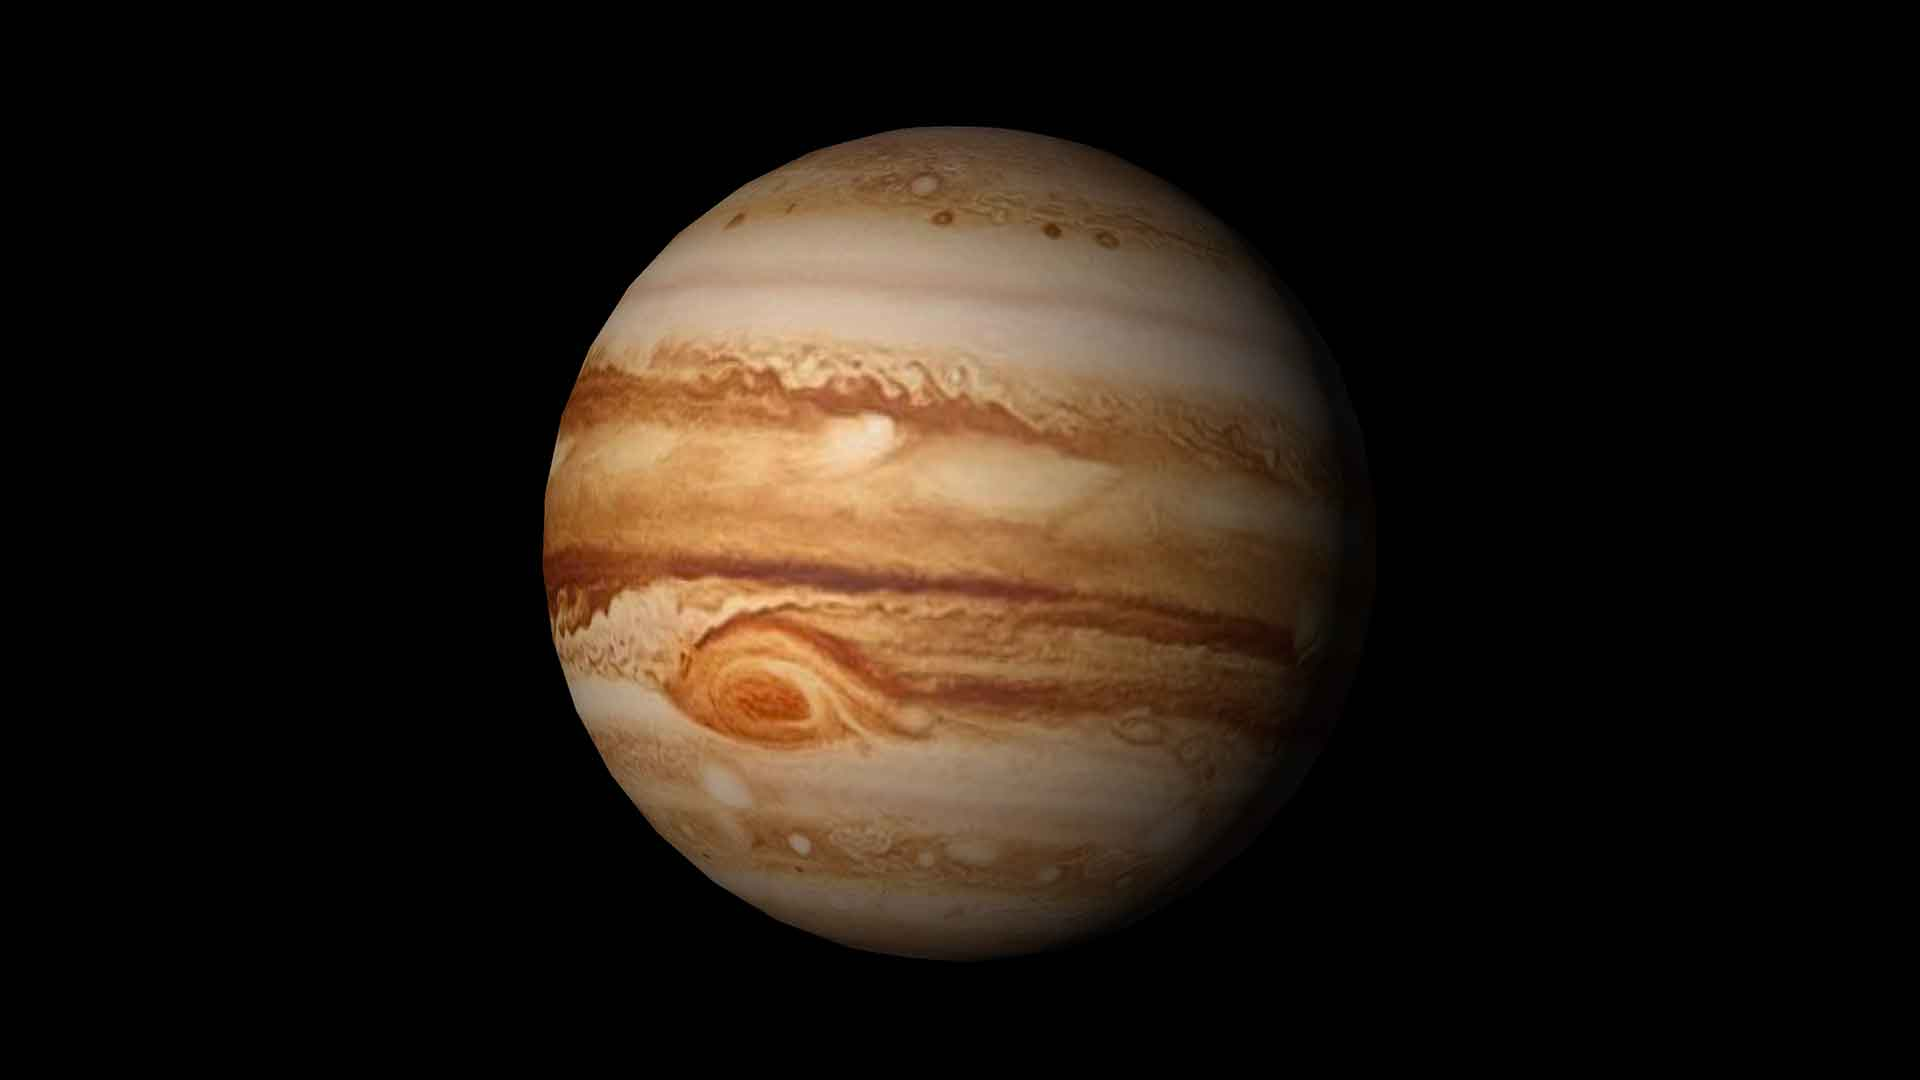 Jupiter Full hd wallpapers